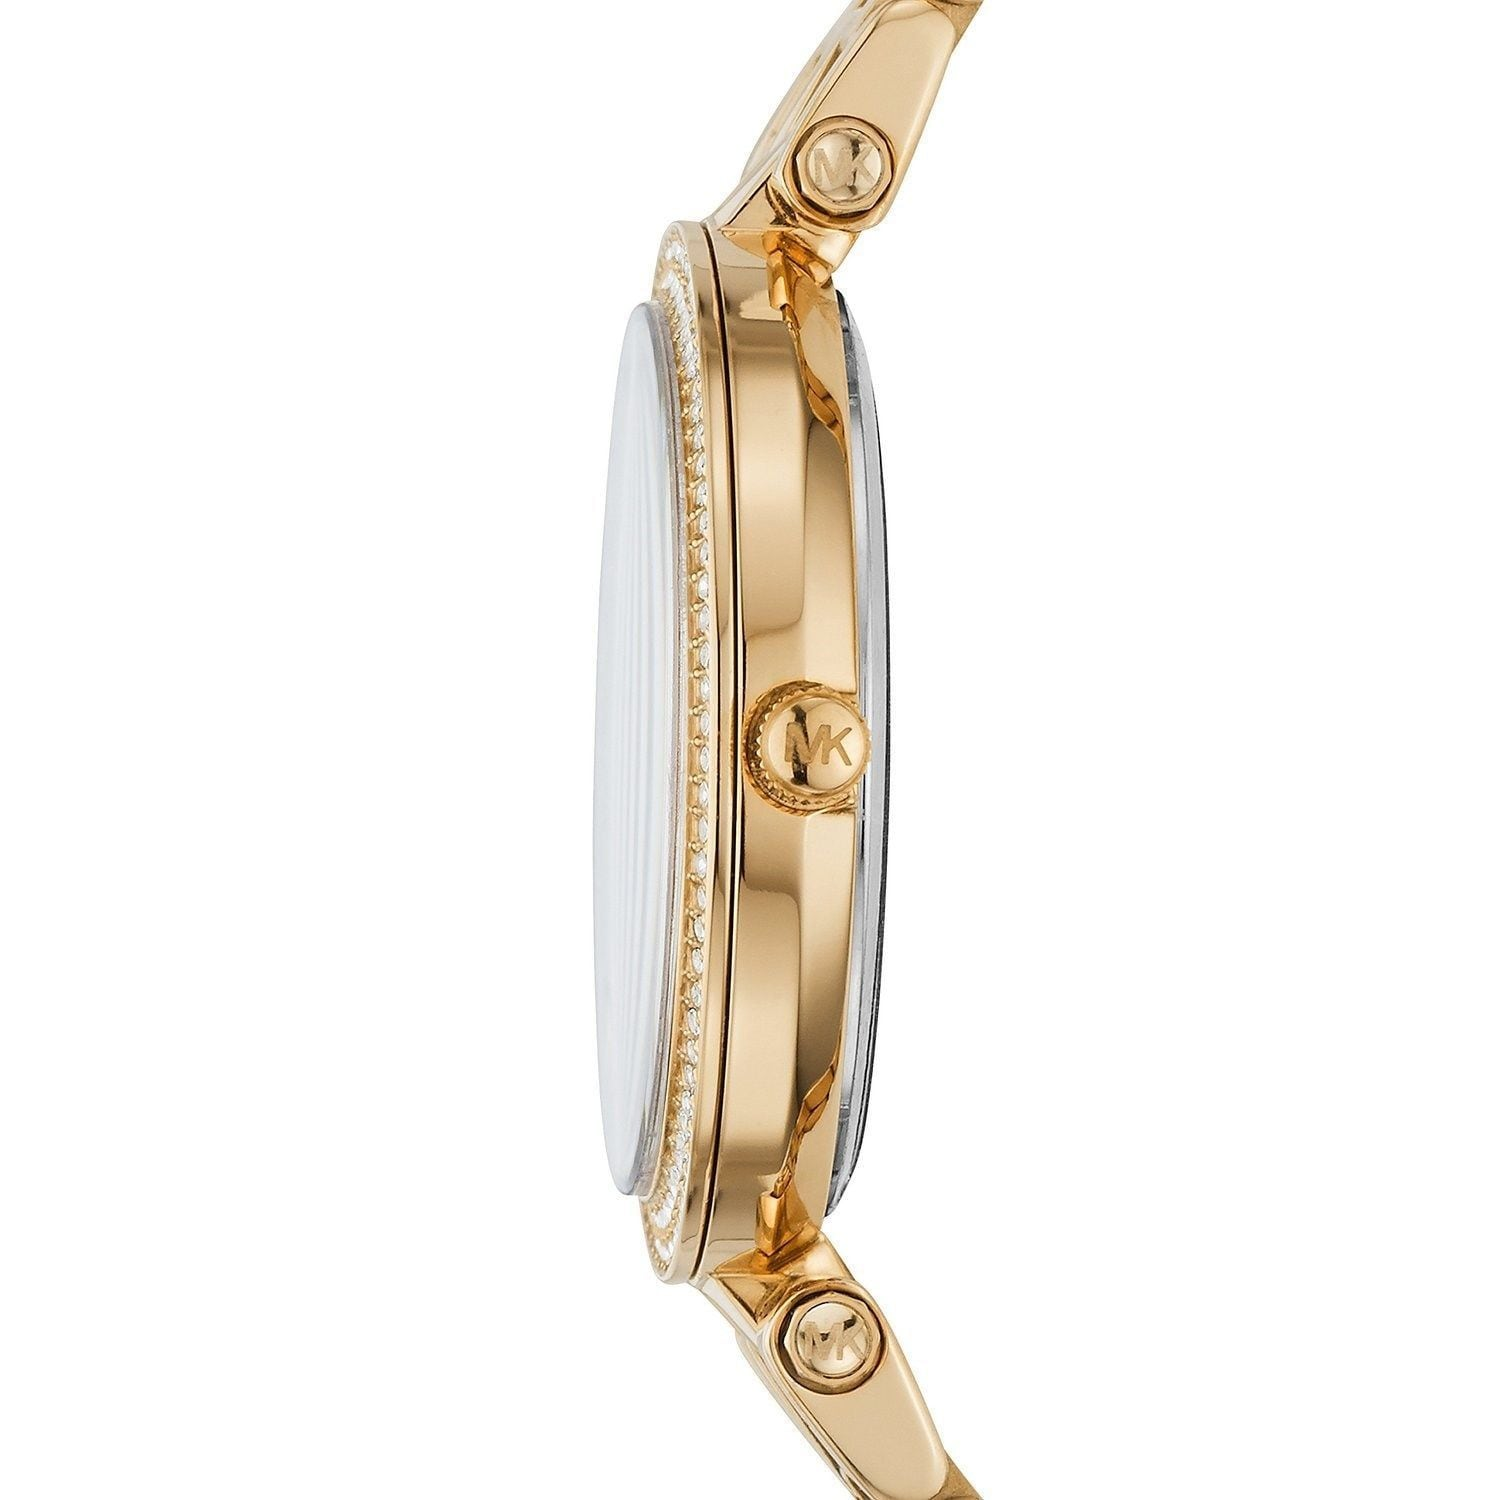 81684261d175 Shop Michael Kors Women s MK3408  Mini Darci  Crystal Gold-Tone Stainless  Steel Watch - Free Shipping Today - Overstock - 10577621